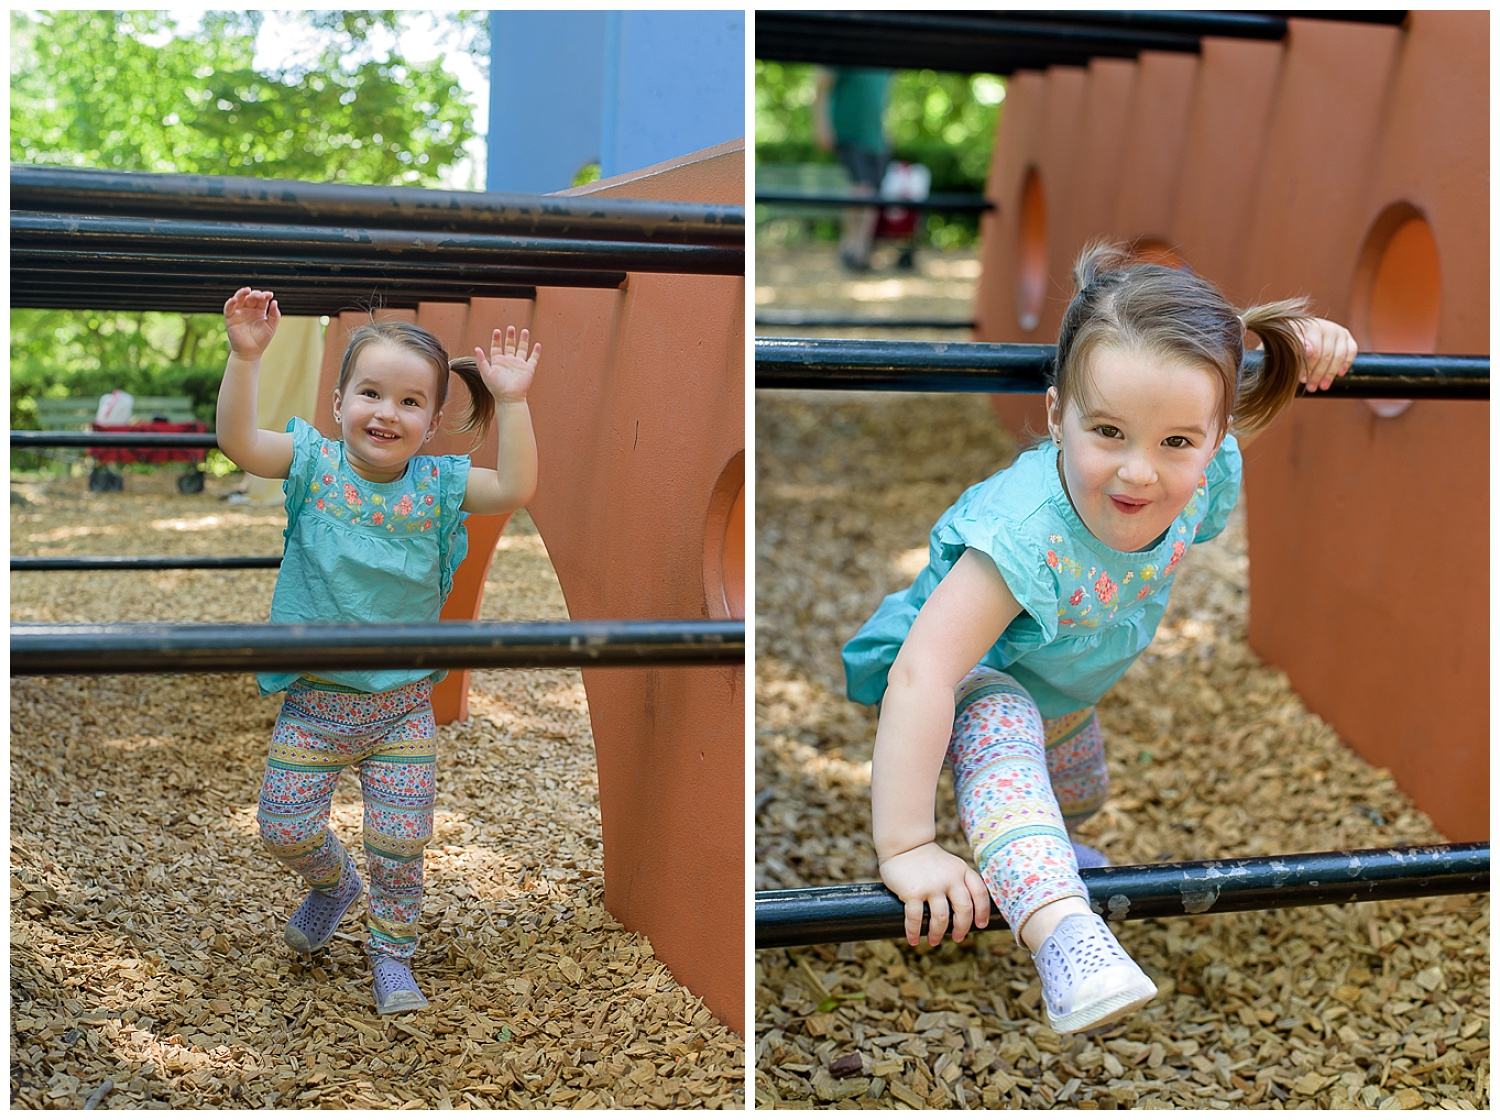 these are images of a toddler playing at a playground at piedmont park in atlanta georgia. she is running around and making silly faces.